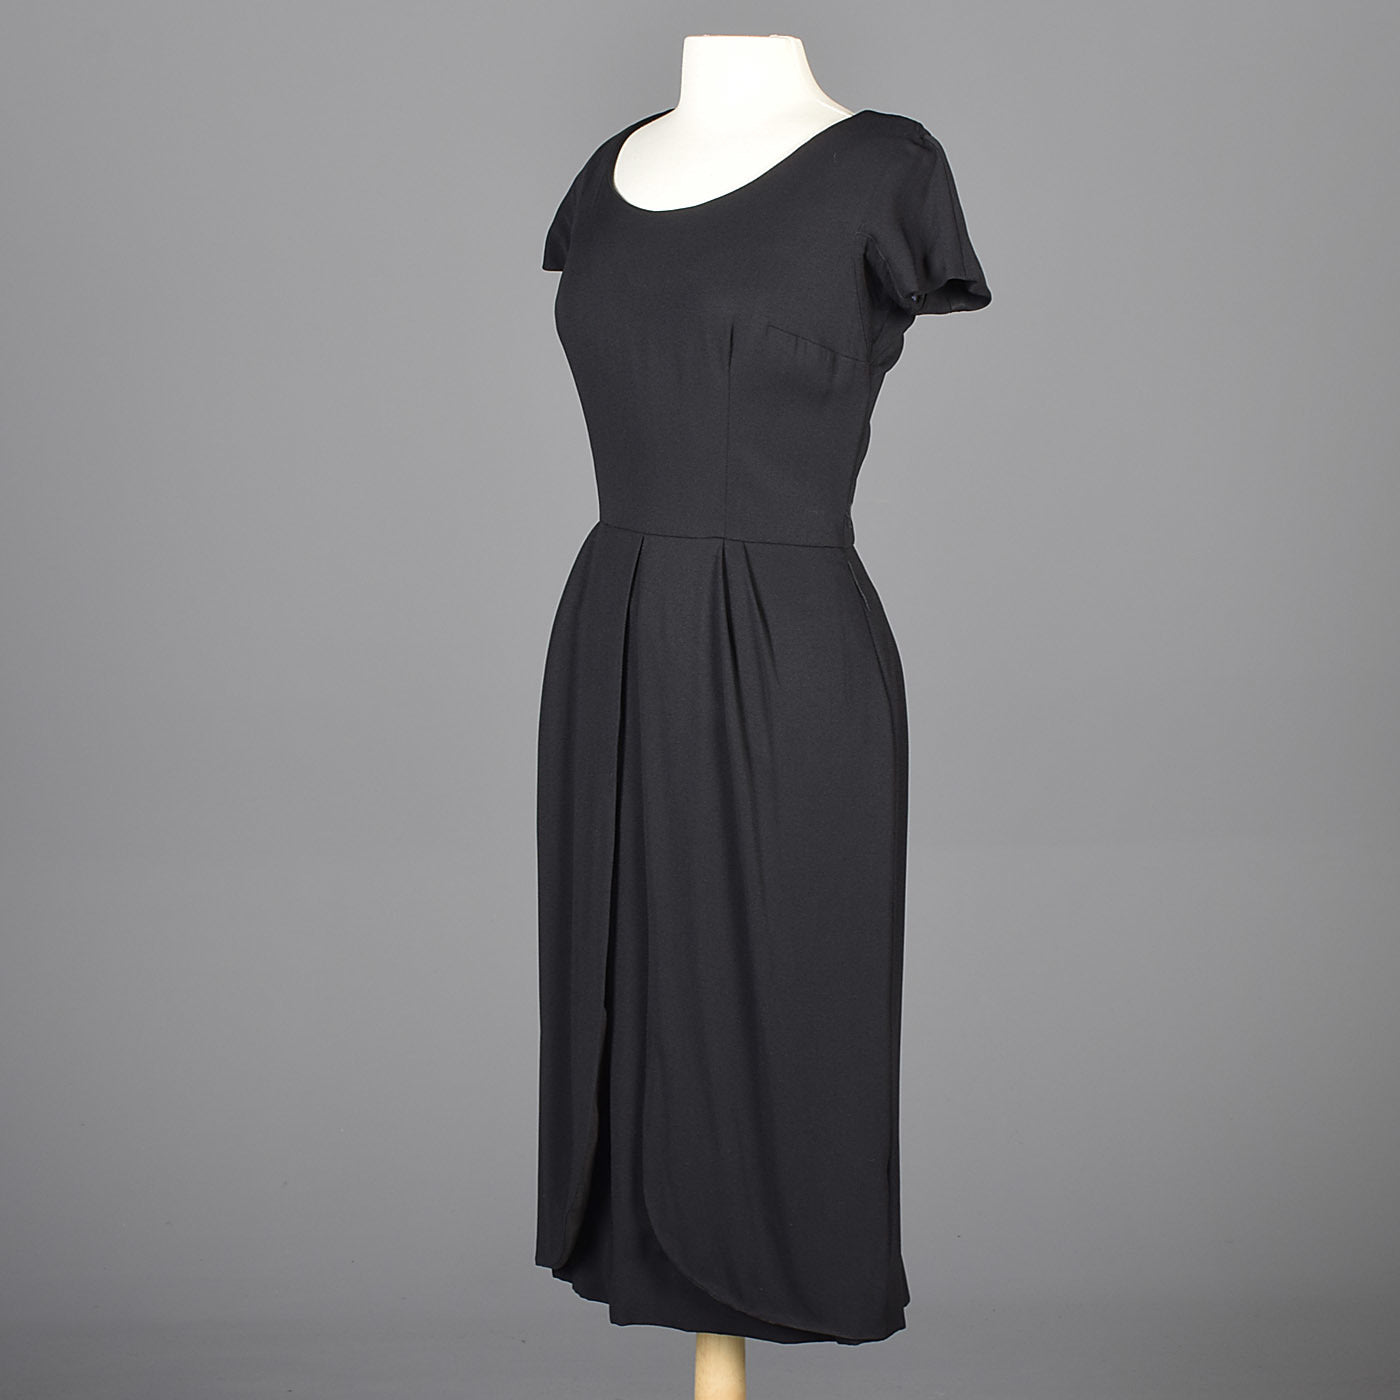 1960s Little Black Dress with Petal Skirt